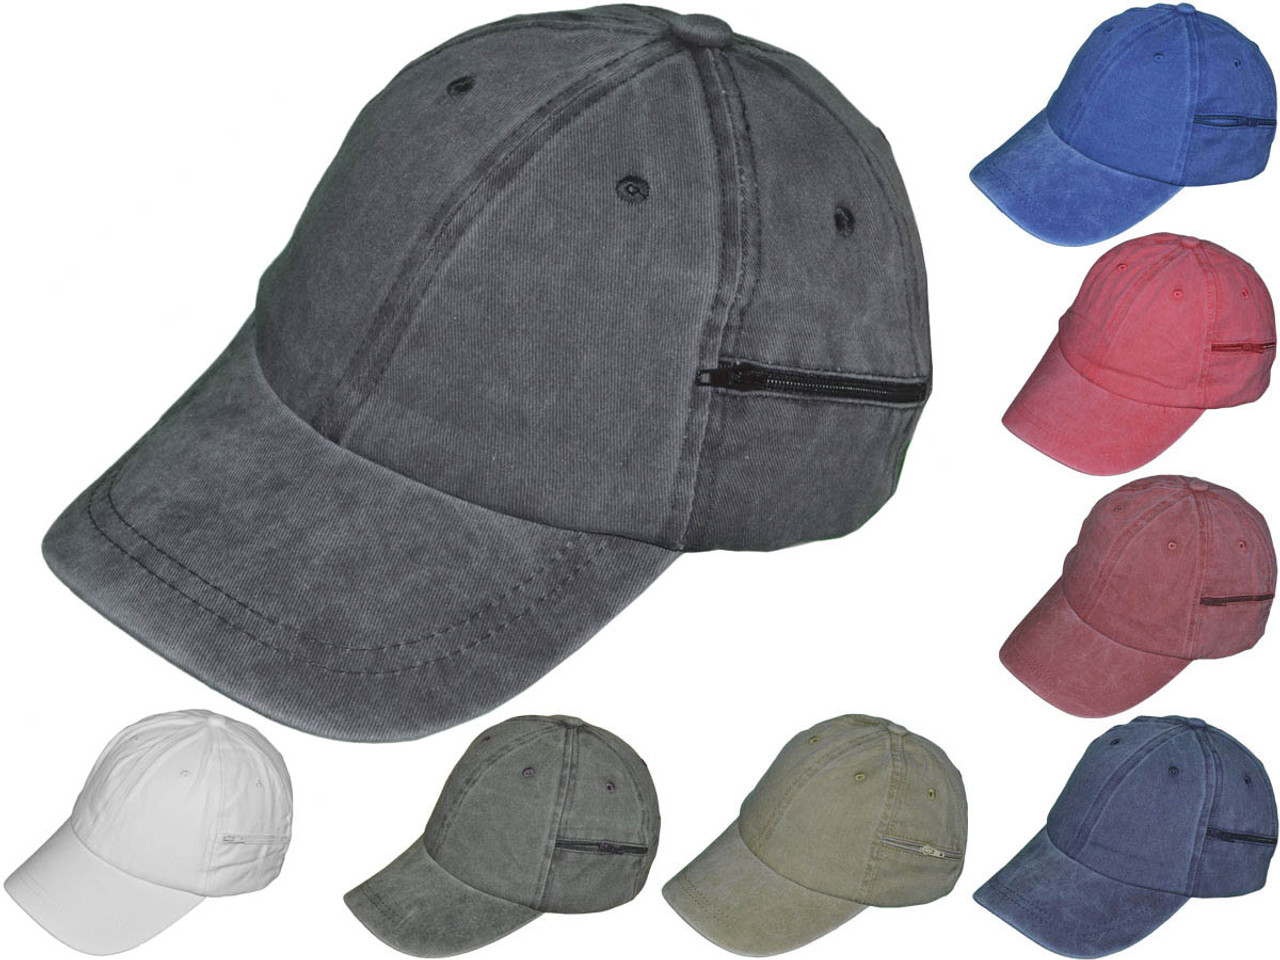 Zipper Pocket BK Caps Blank Dad Hats - Unstructured Cotton Polo ...